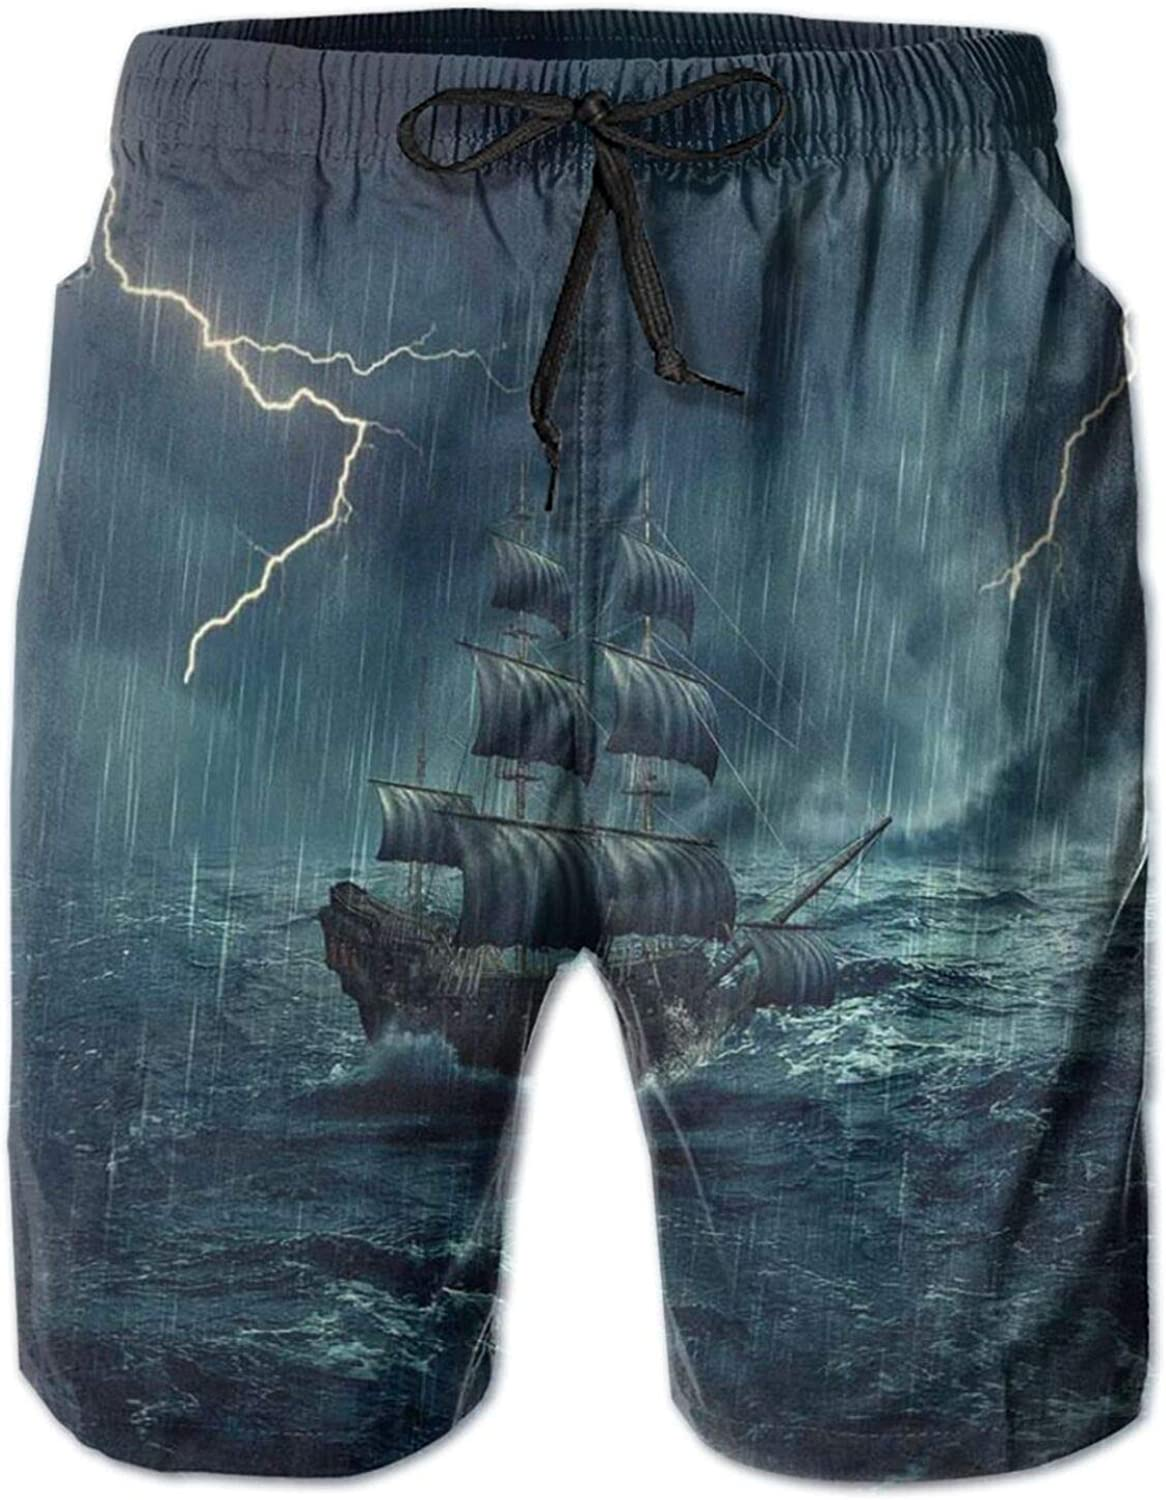 Stormy Rainy Weather Waves Pirate Vintage Ship Sailing Oil Paint Mens Swim Trucks Shorts with Mesh Lining,M